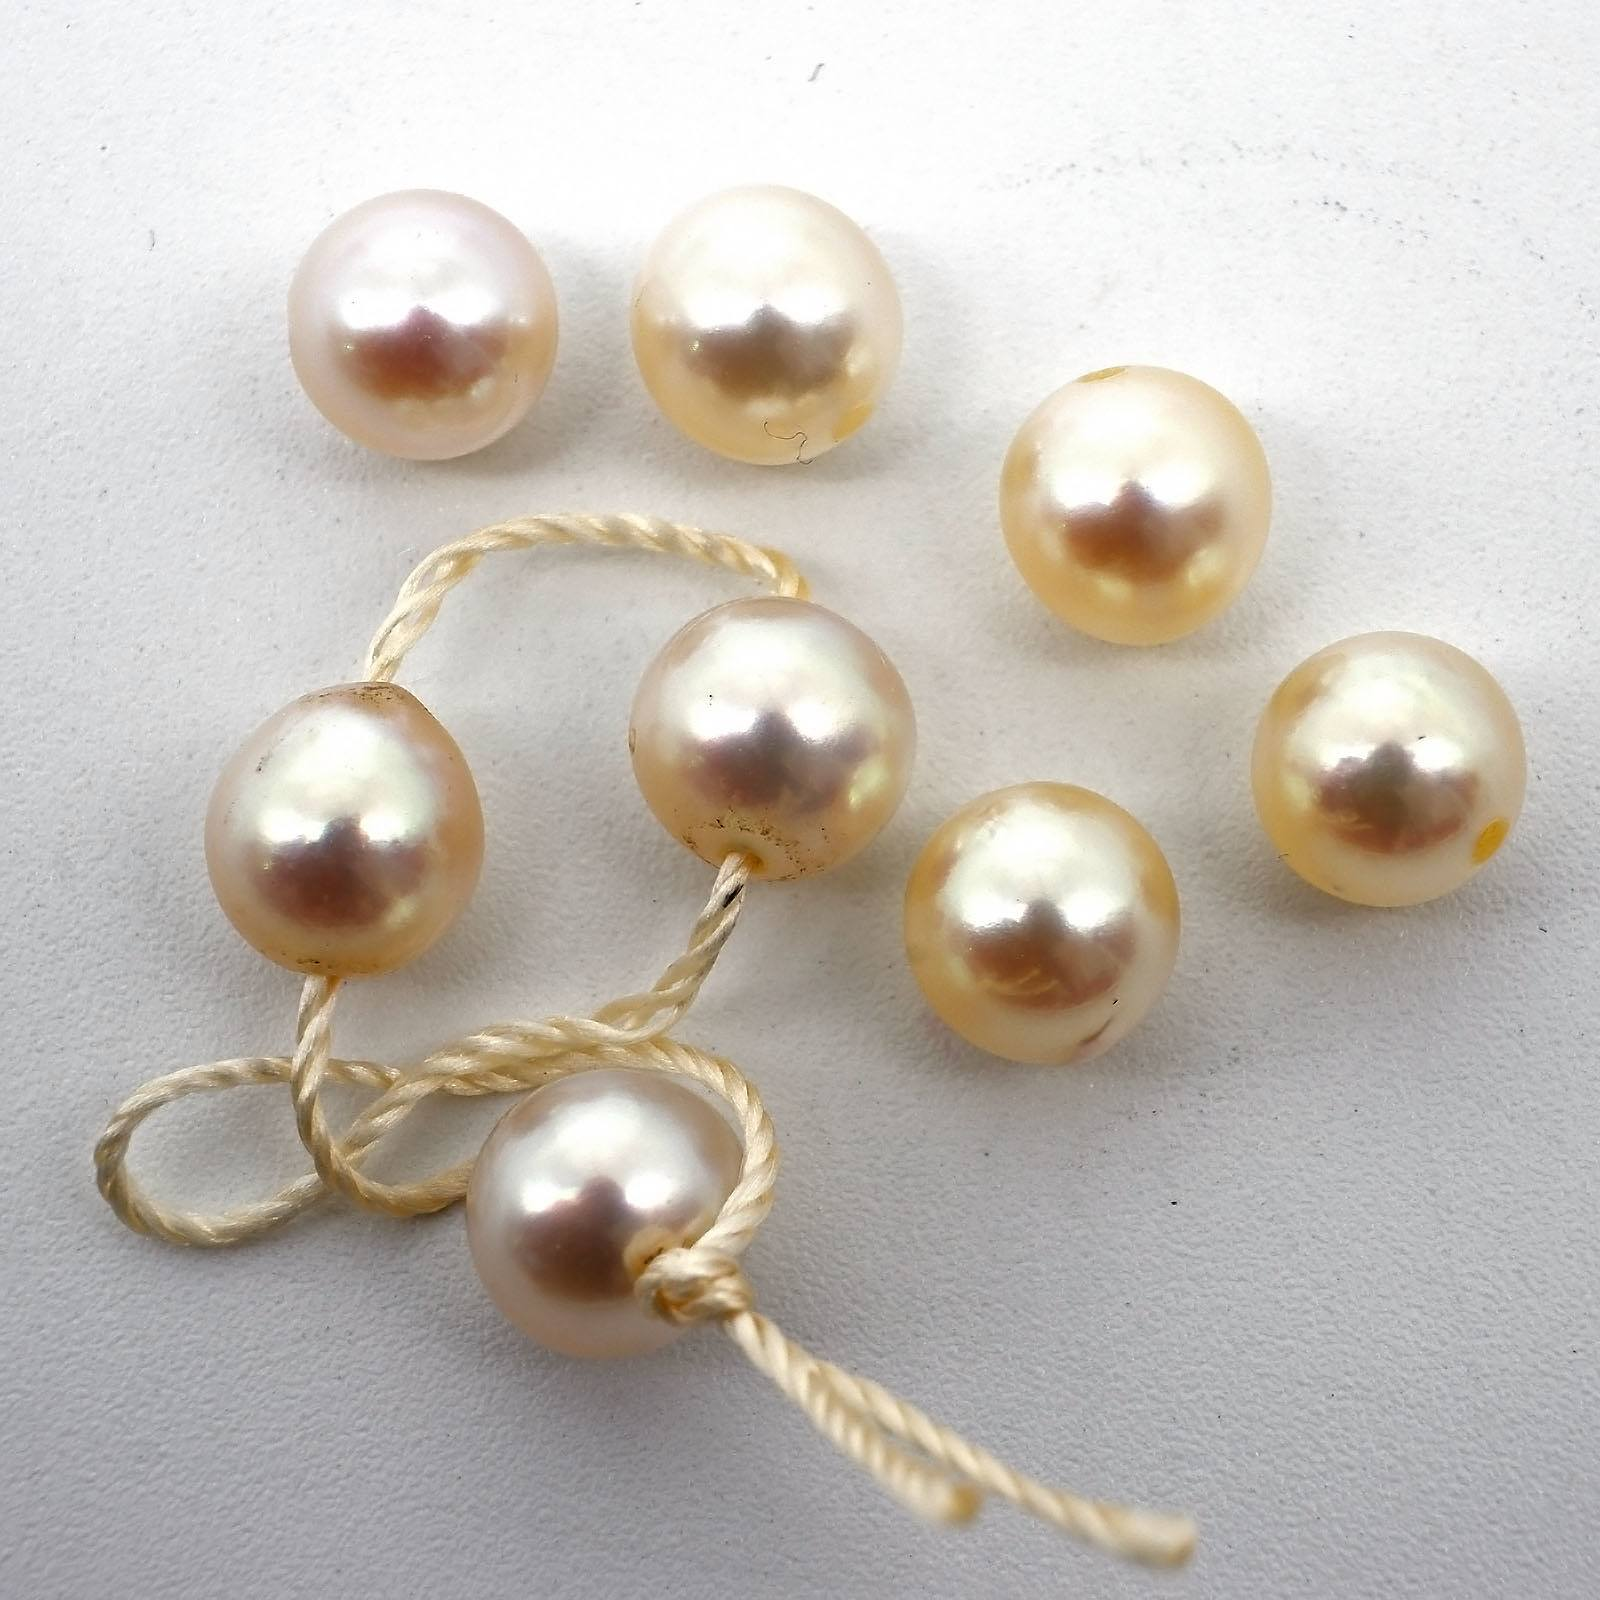 'Eight 6mm White Cultured Pearls'